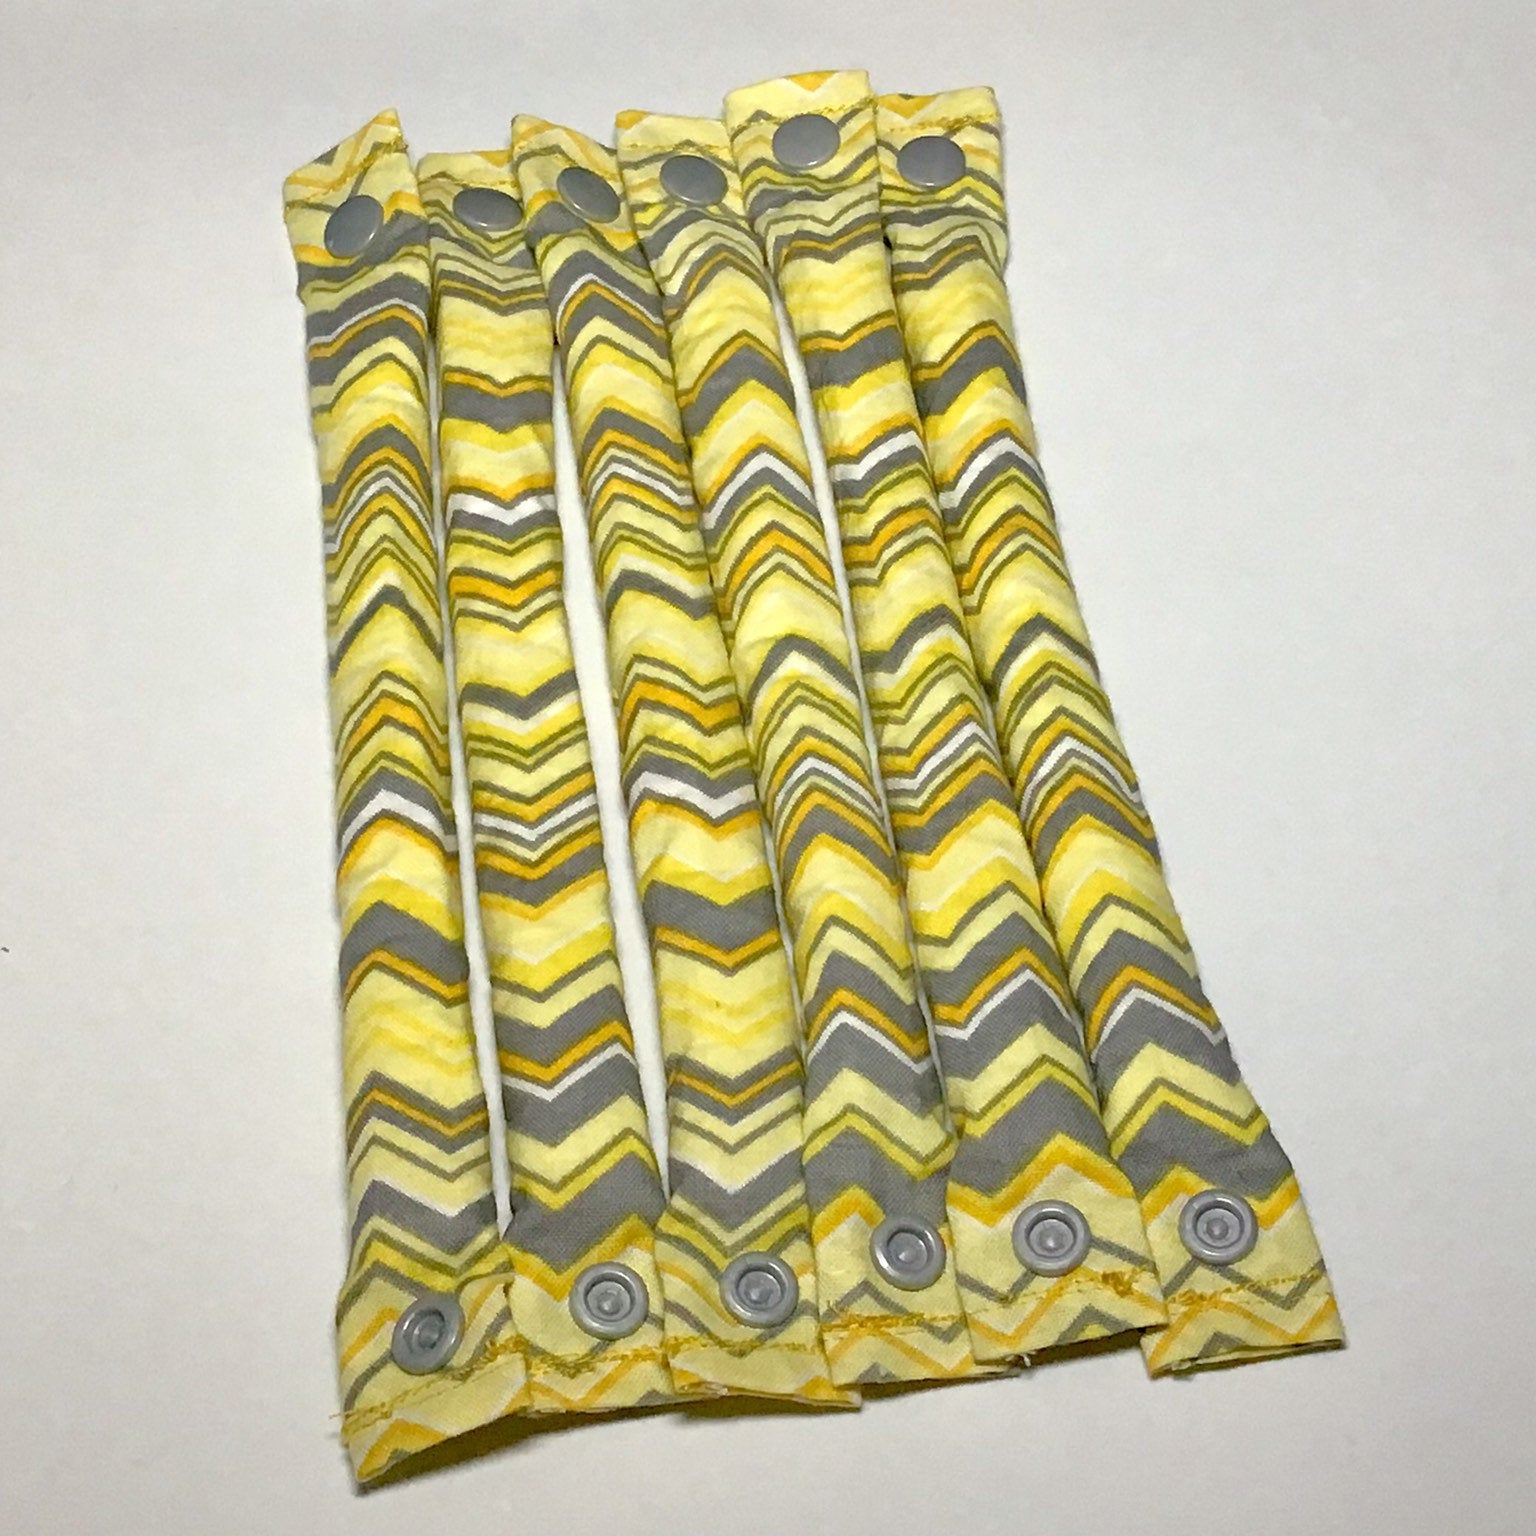 Yellow and Gray Chevron Cotton Hair Rollers - My Easy Curls